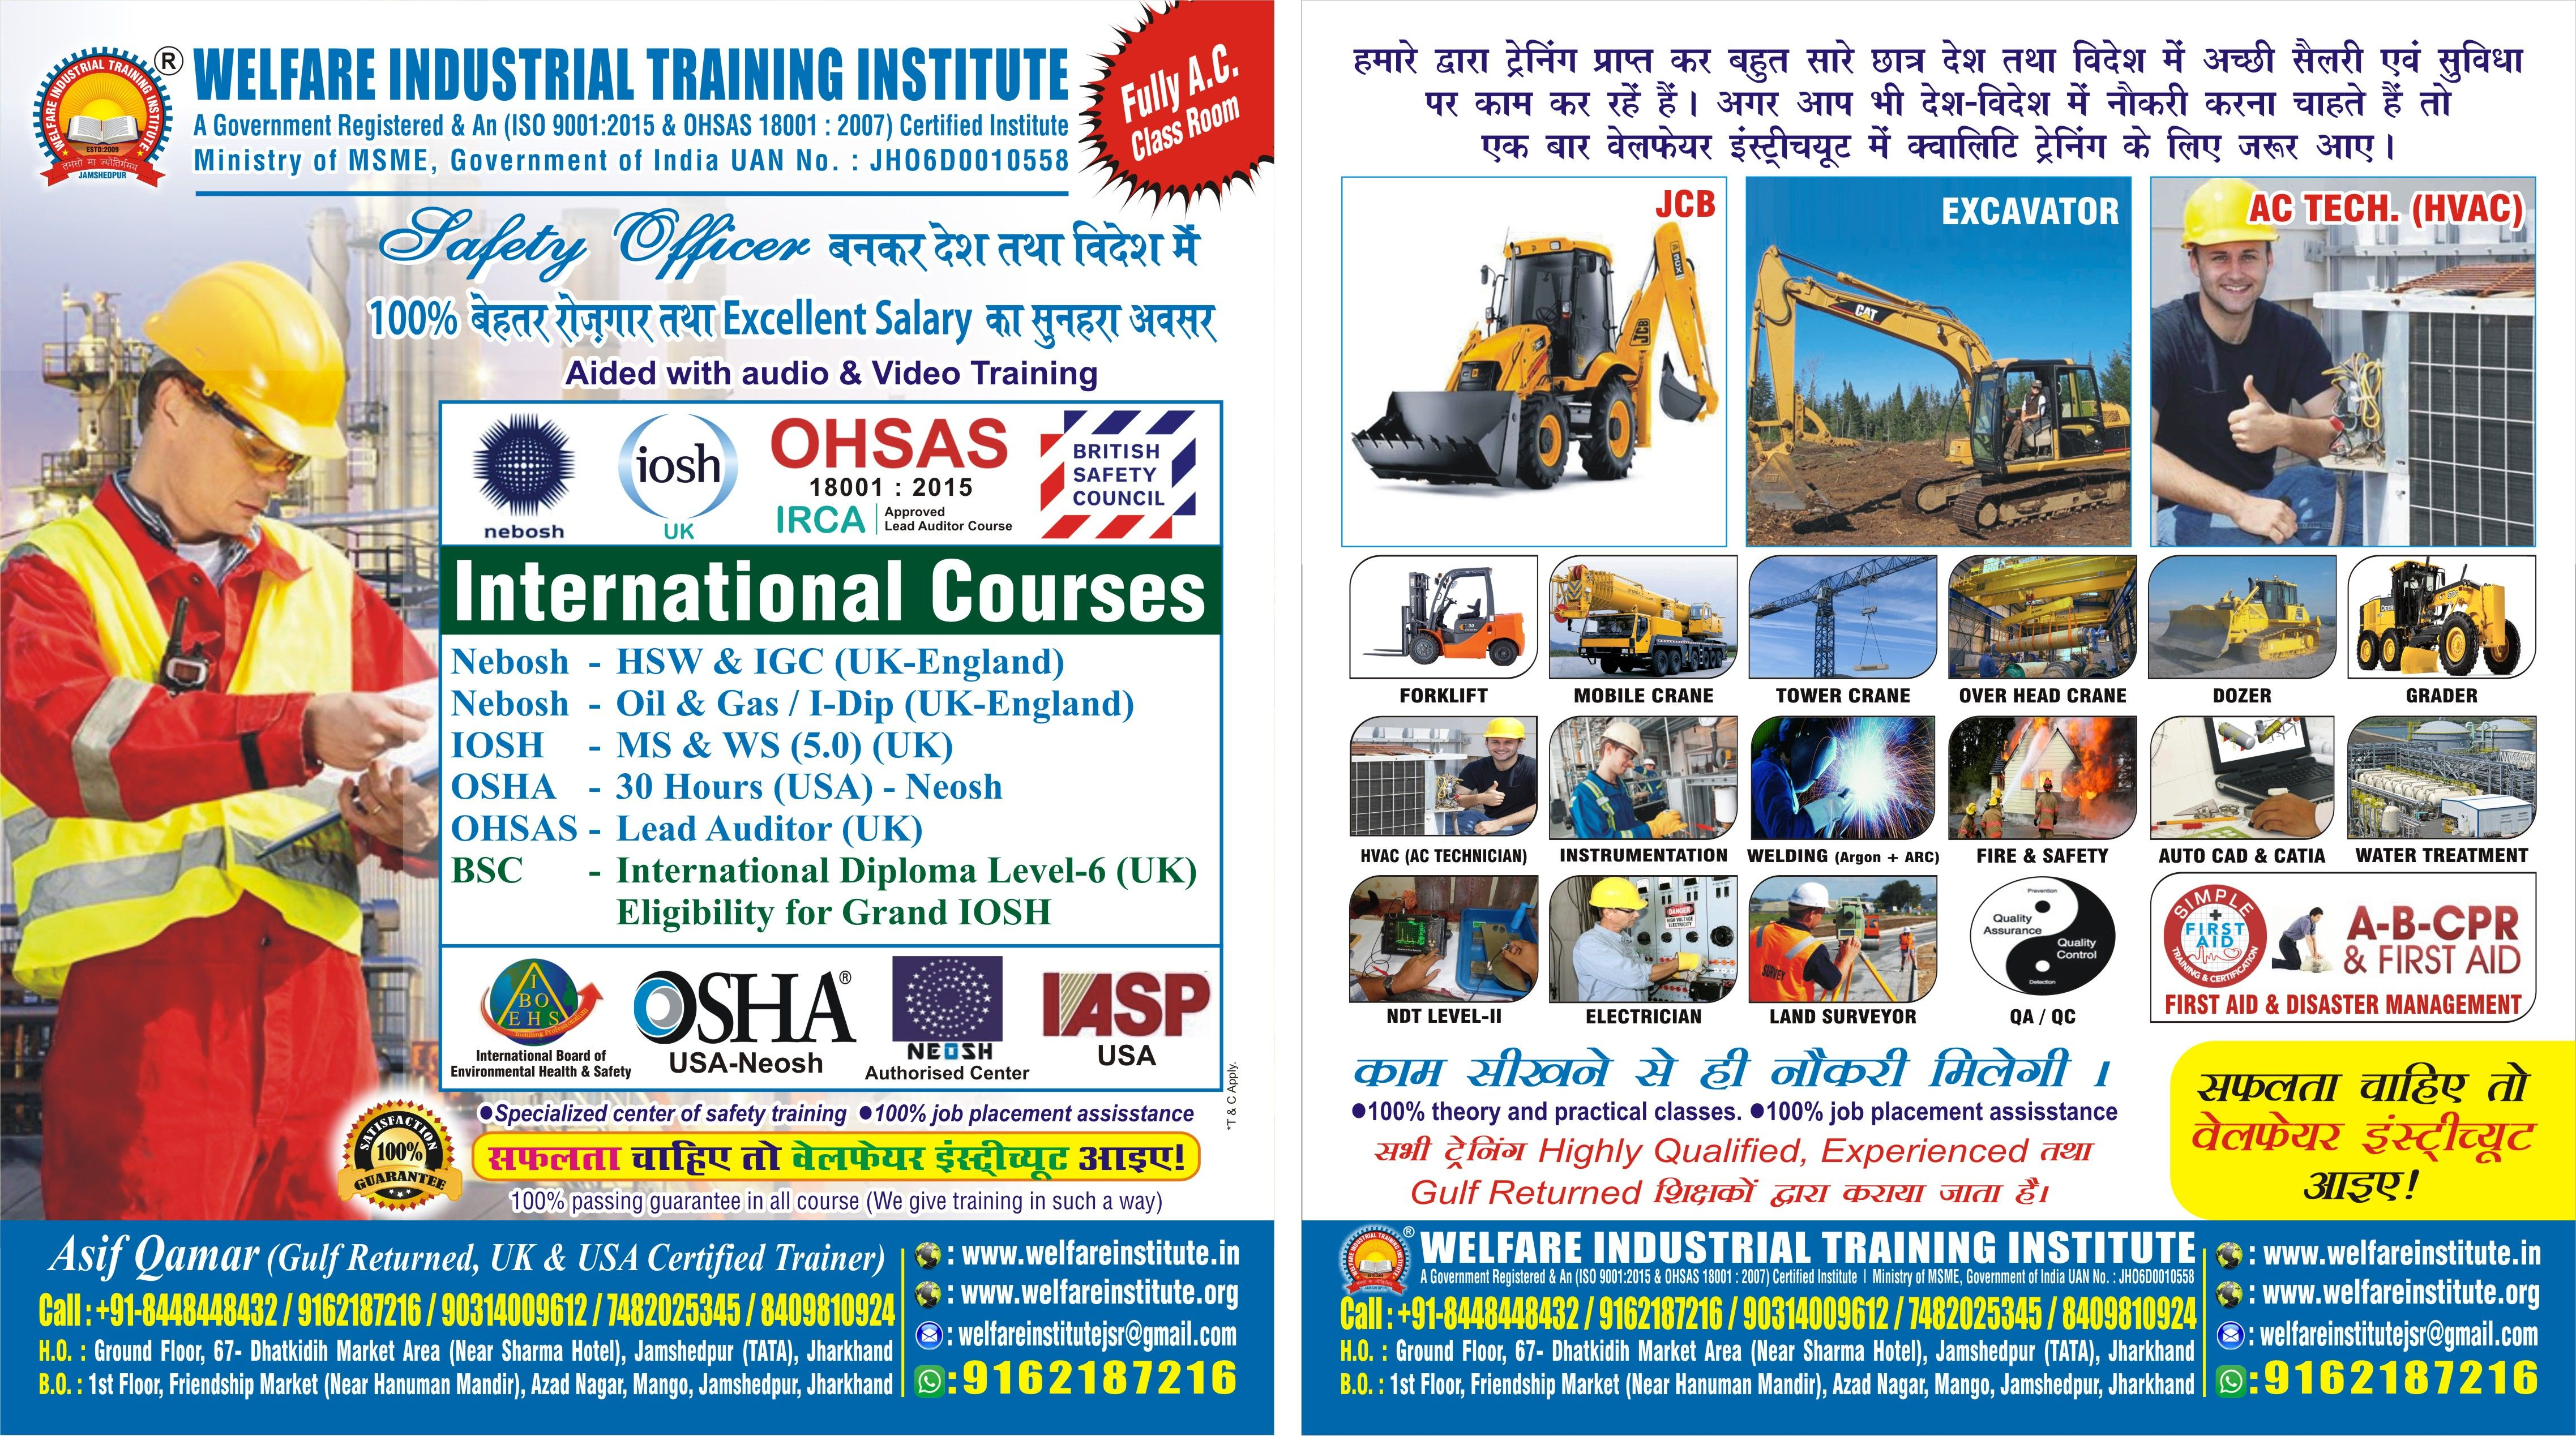 Safety officer Course in India. Get Special discounts on